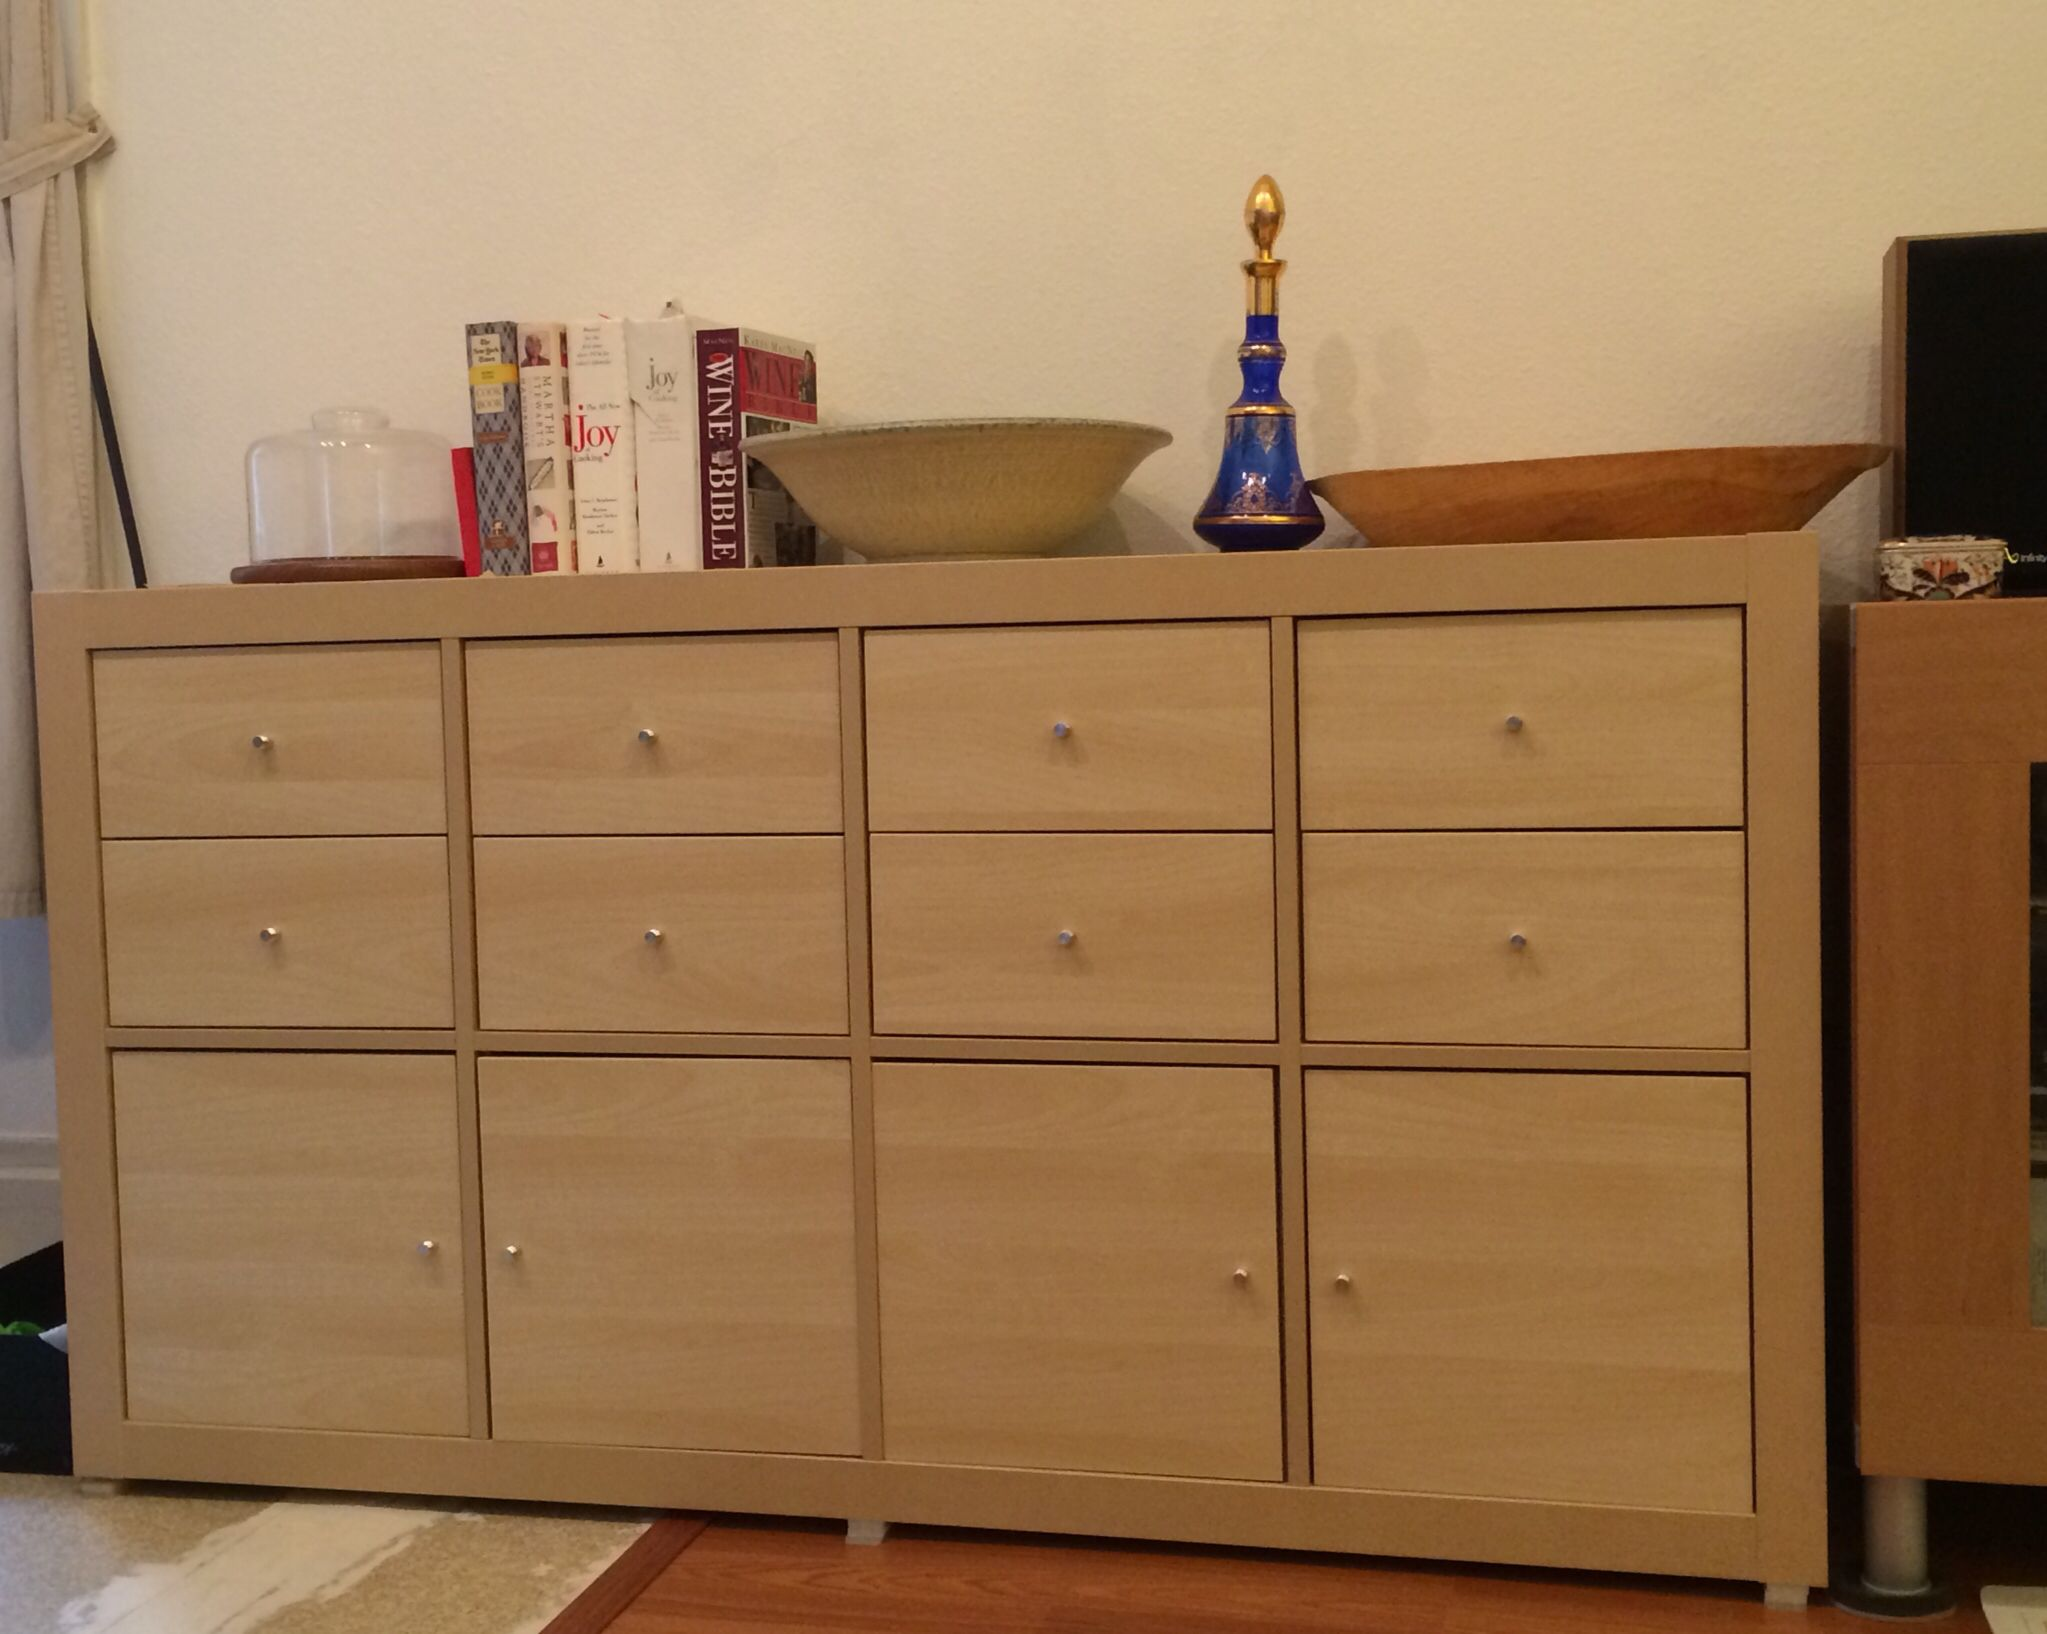 Ikea Expedit With Kallax Doors And Drawers To Make A